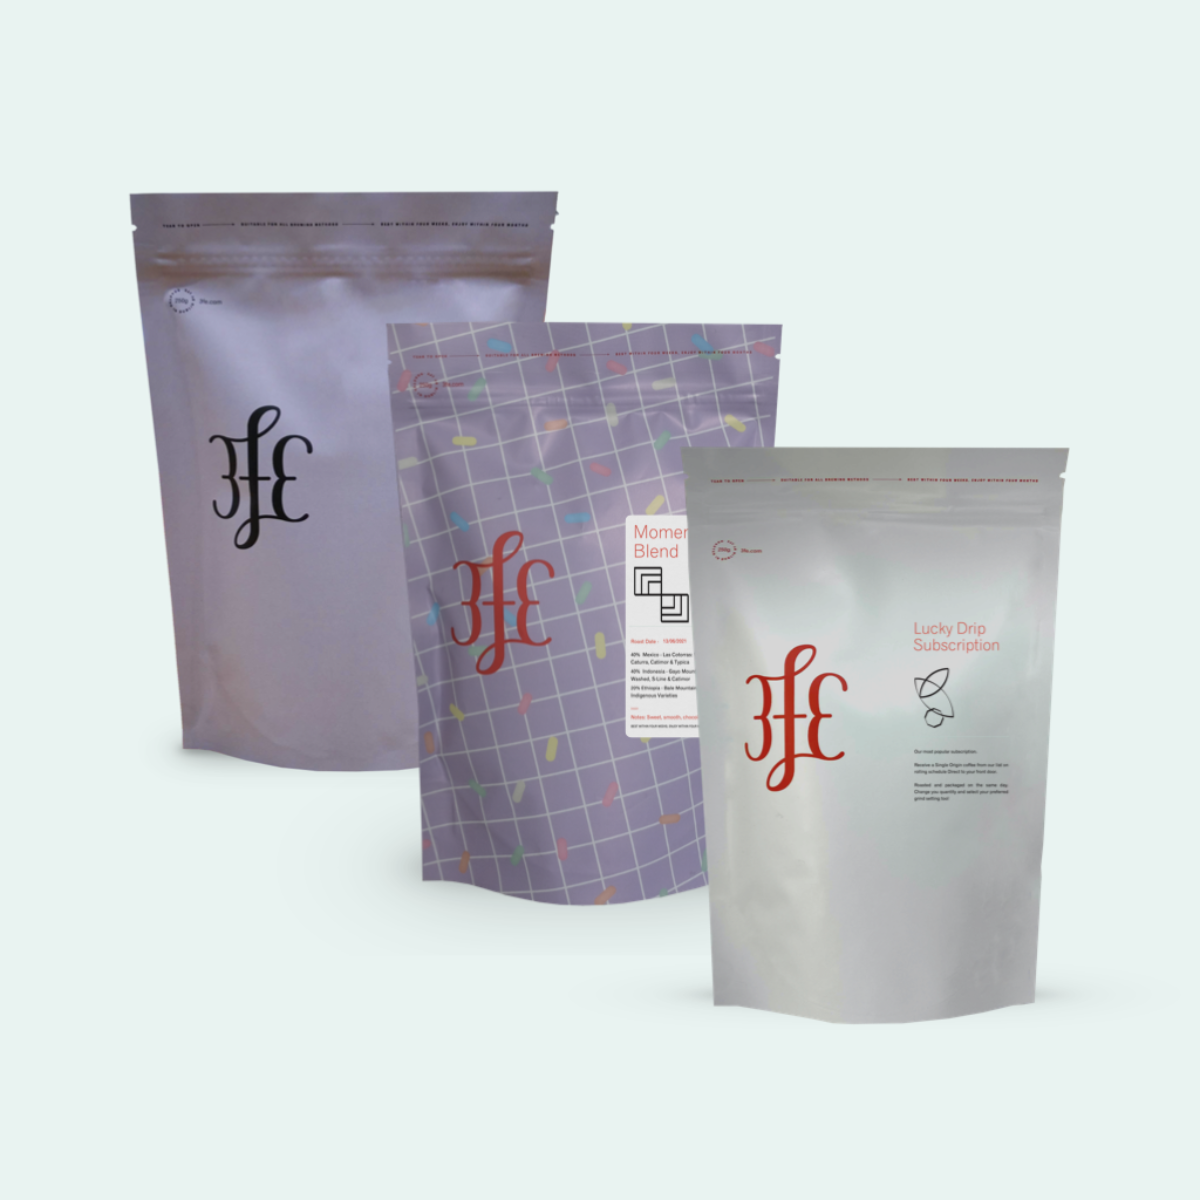 3fe Coffee Subscriptions